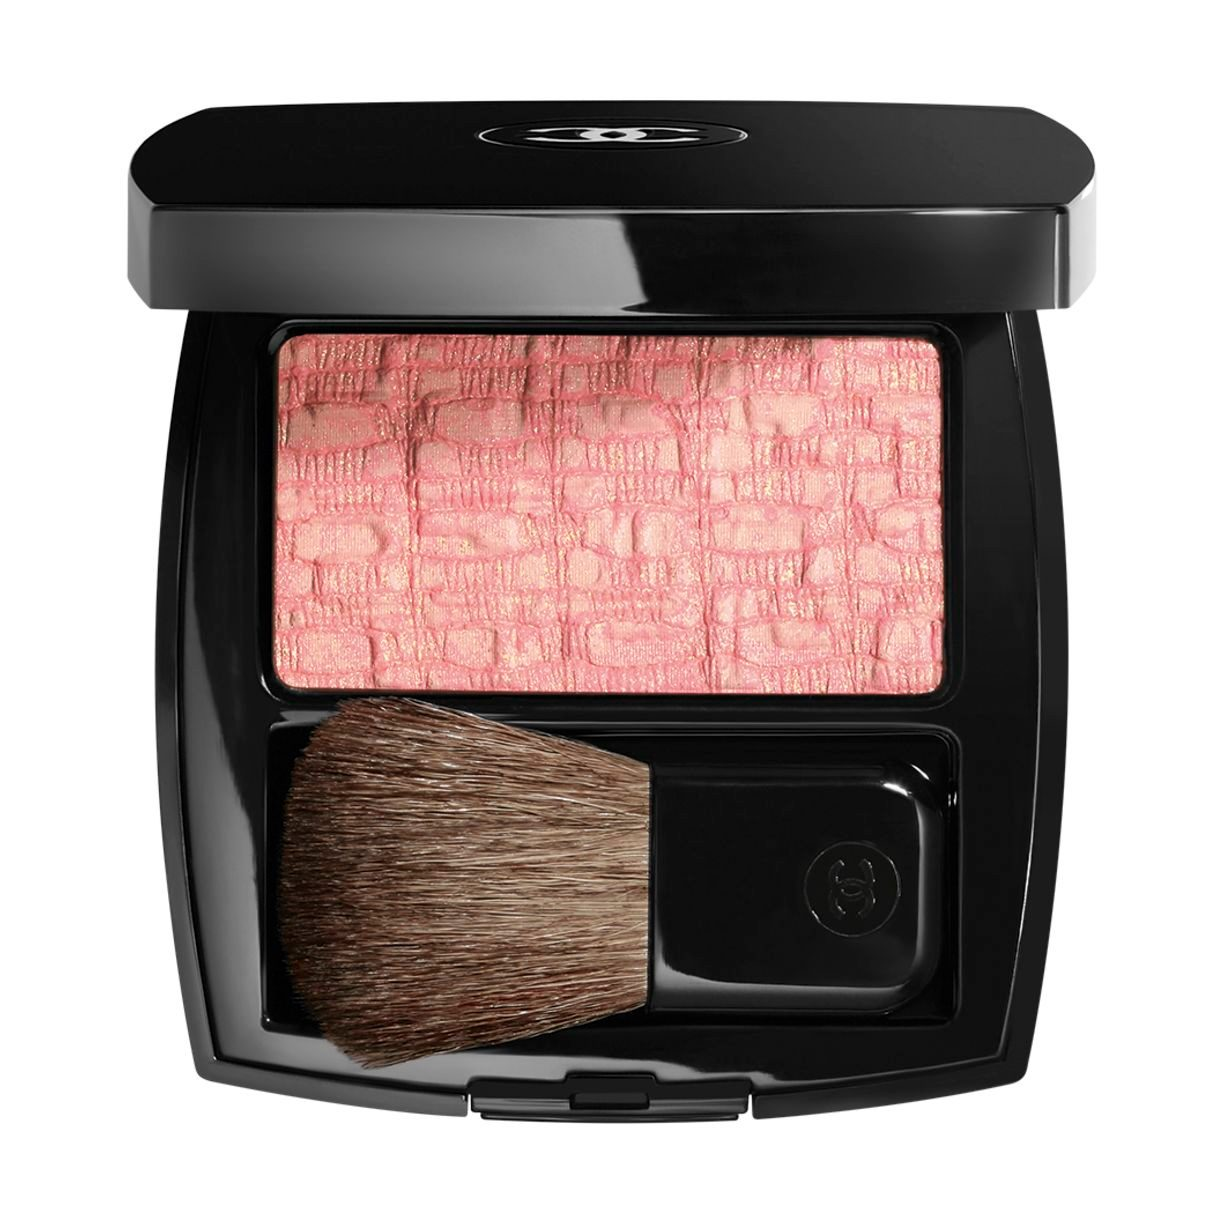 LES TISSAGES DE CHANEL DUO BLUSH MET TWEEDRELIËF